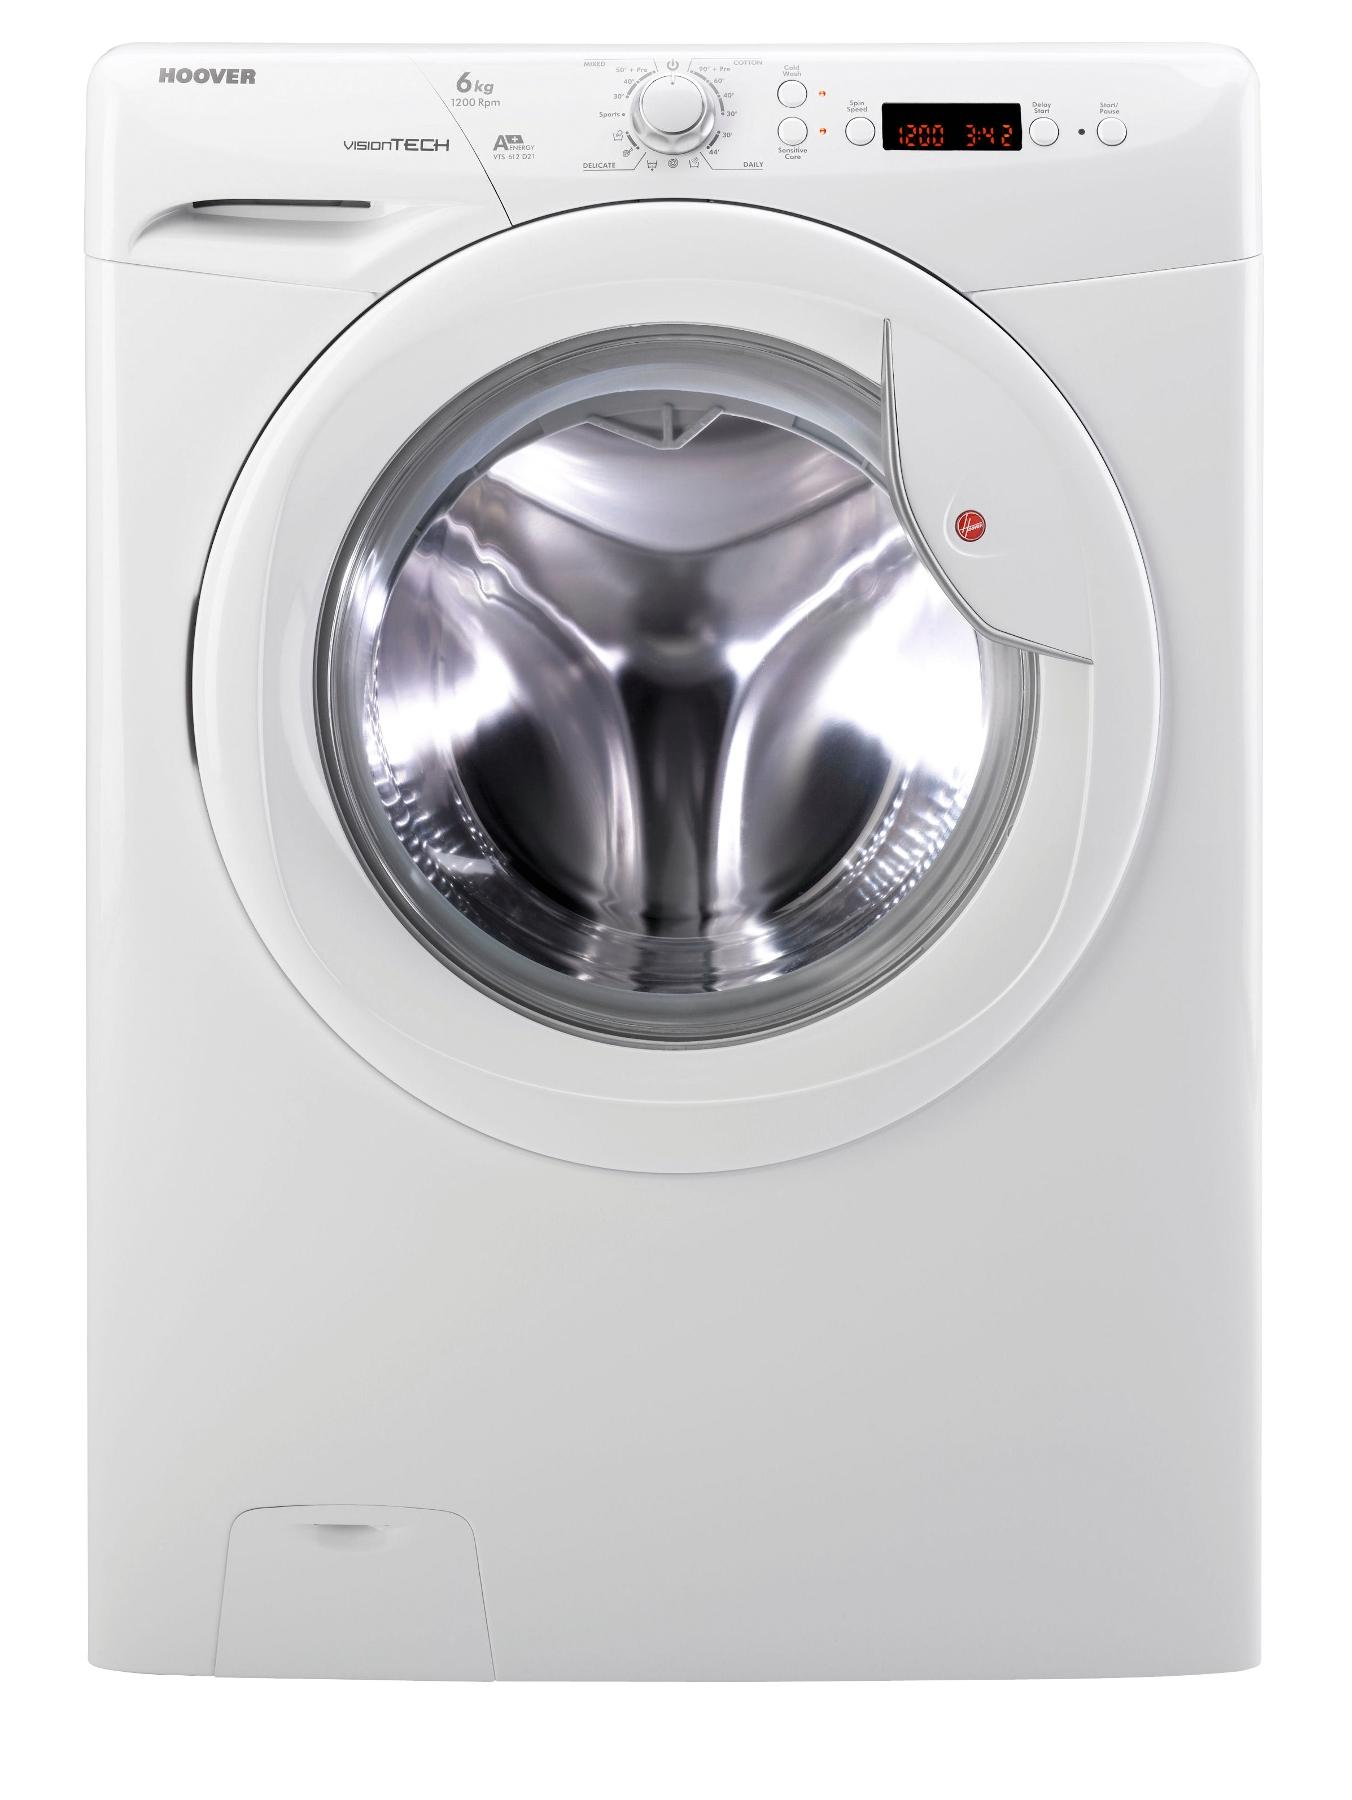 VTS612D21 1200 Spin, 6kg Load Washing Machine - White